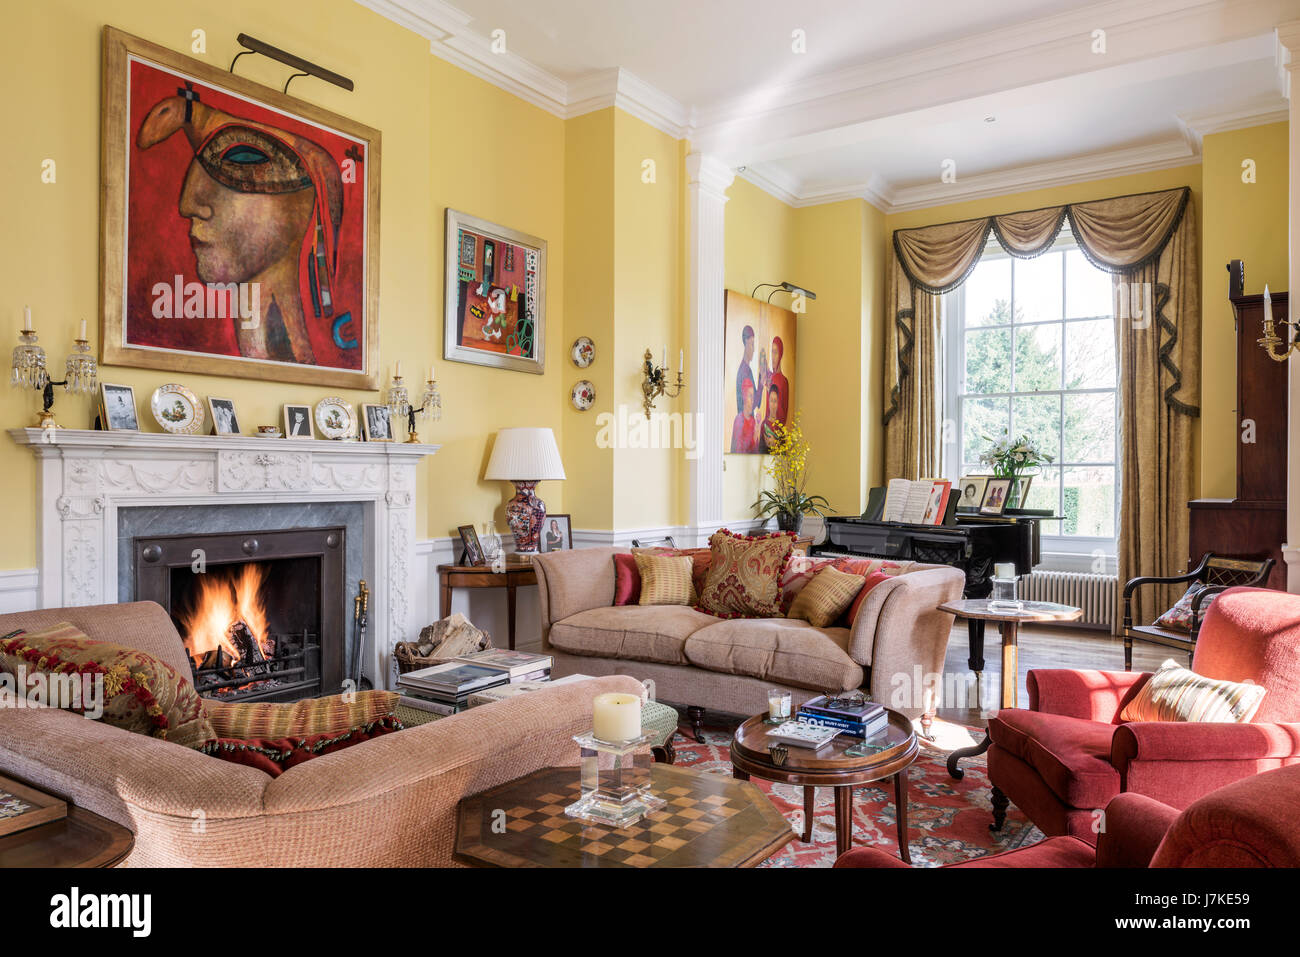 Mixed modern art and antique furniture in large yellow drawing room